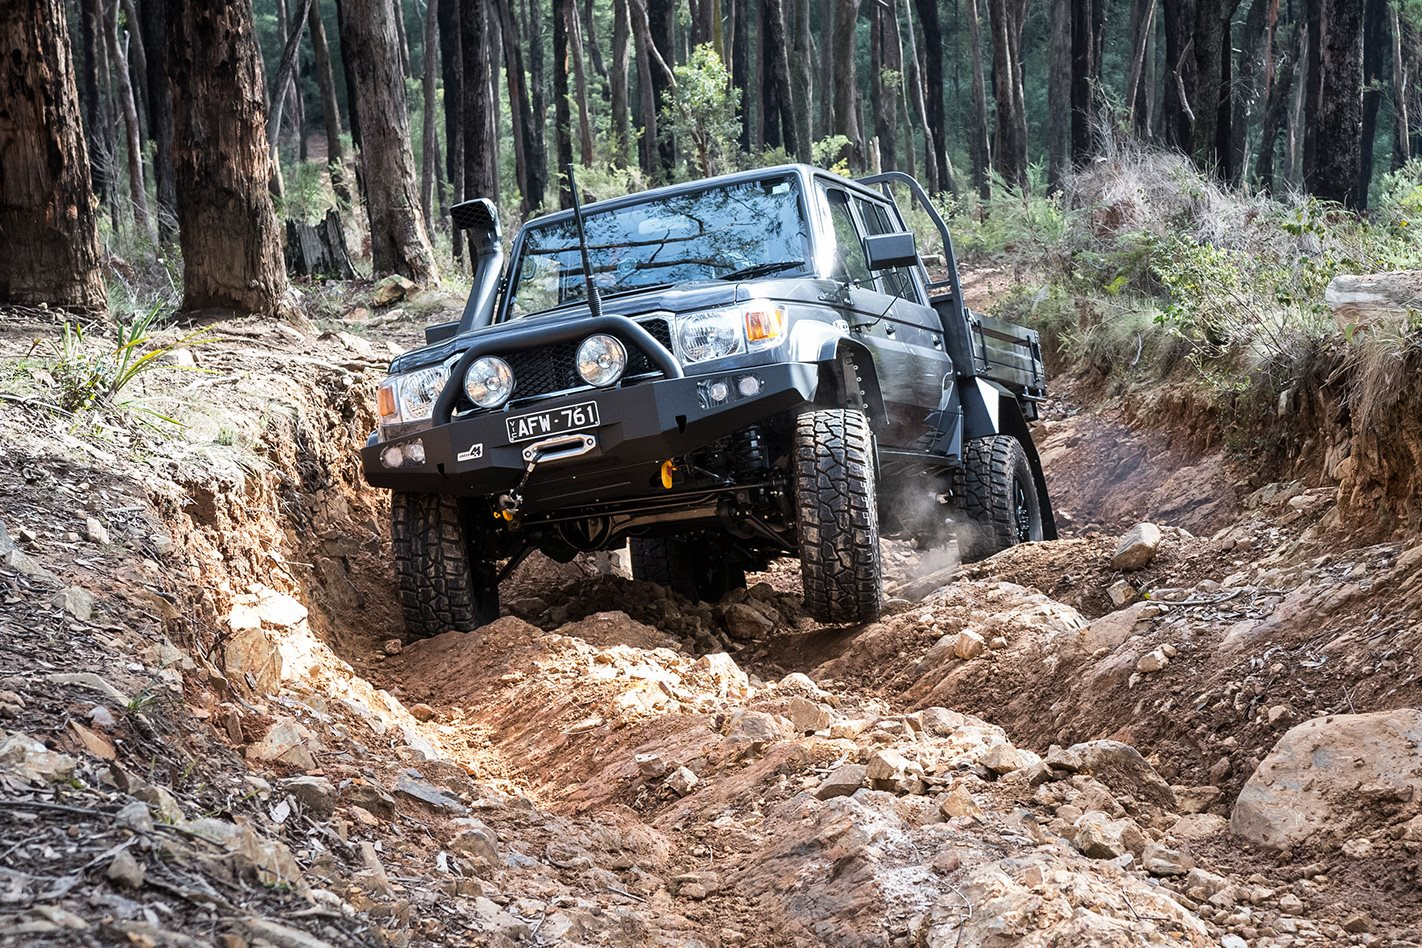 Land Cruiser 70 Series Clutch Kits: Why you need one